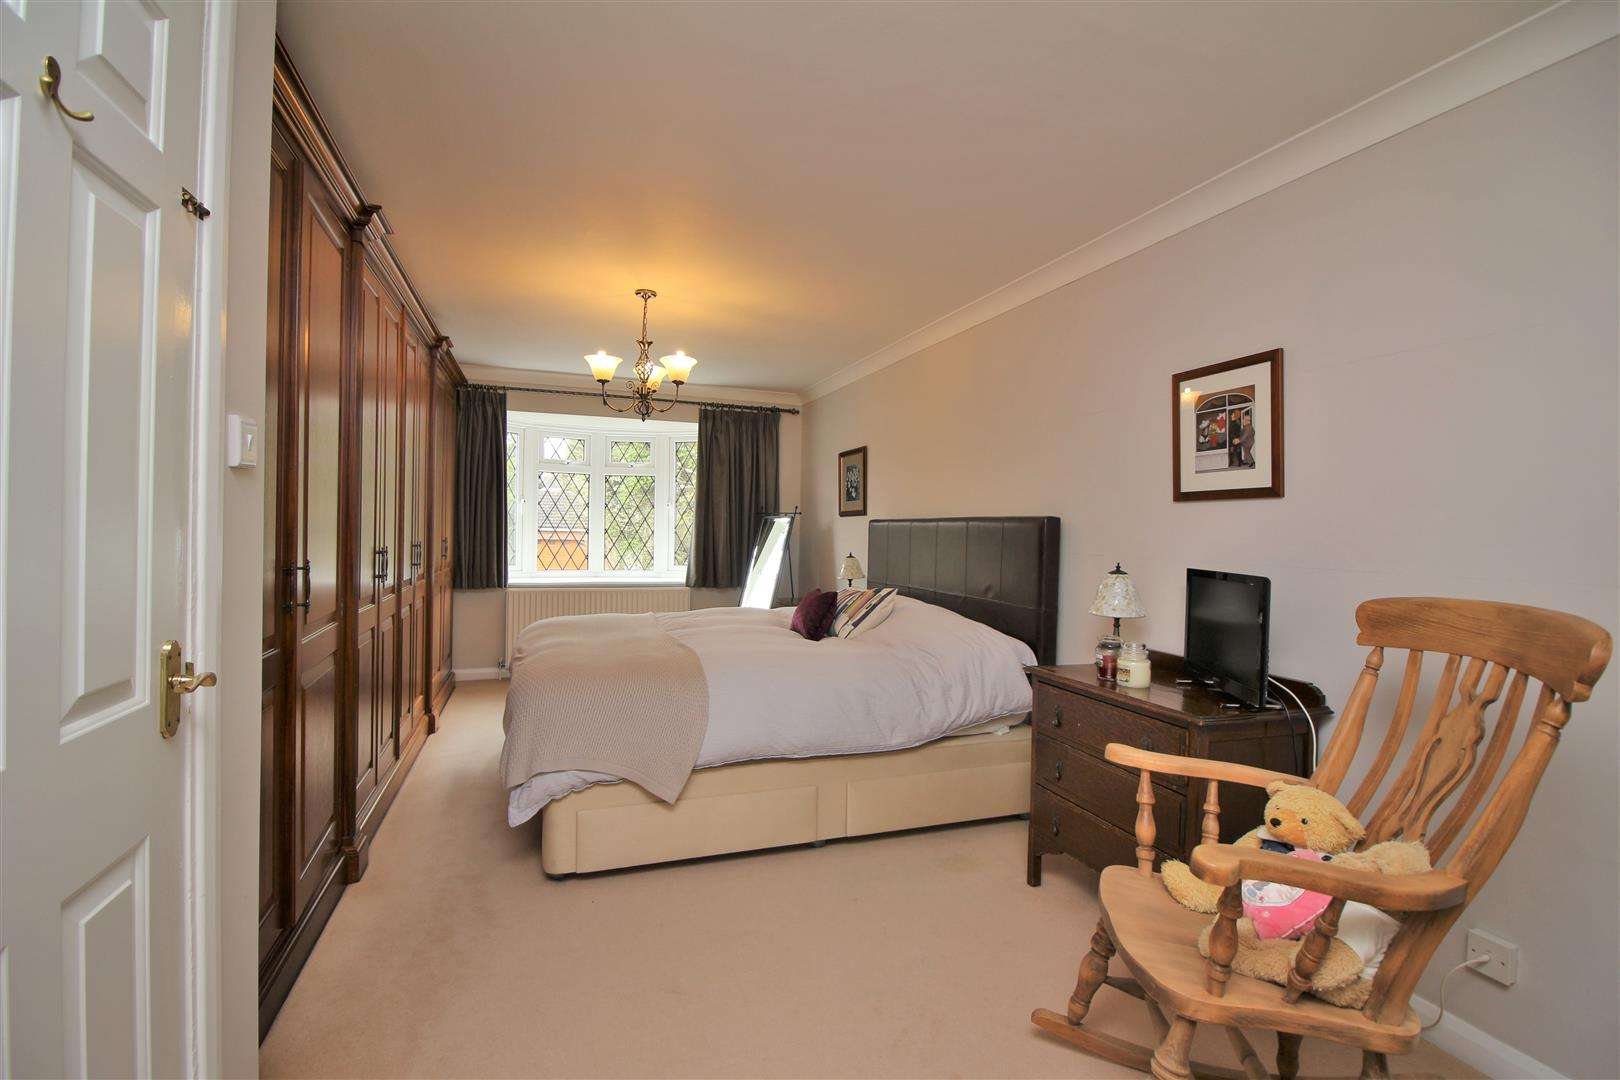 5 bed for sale - (Property Image 7)